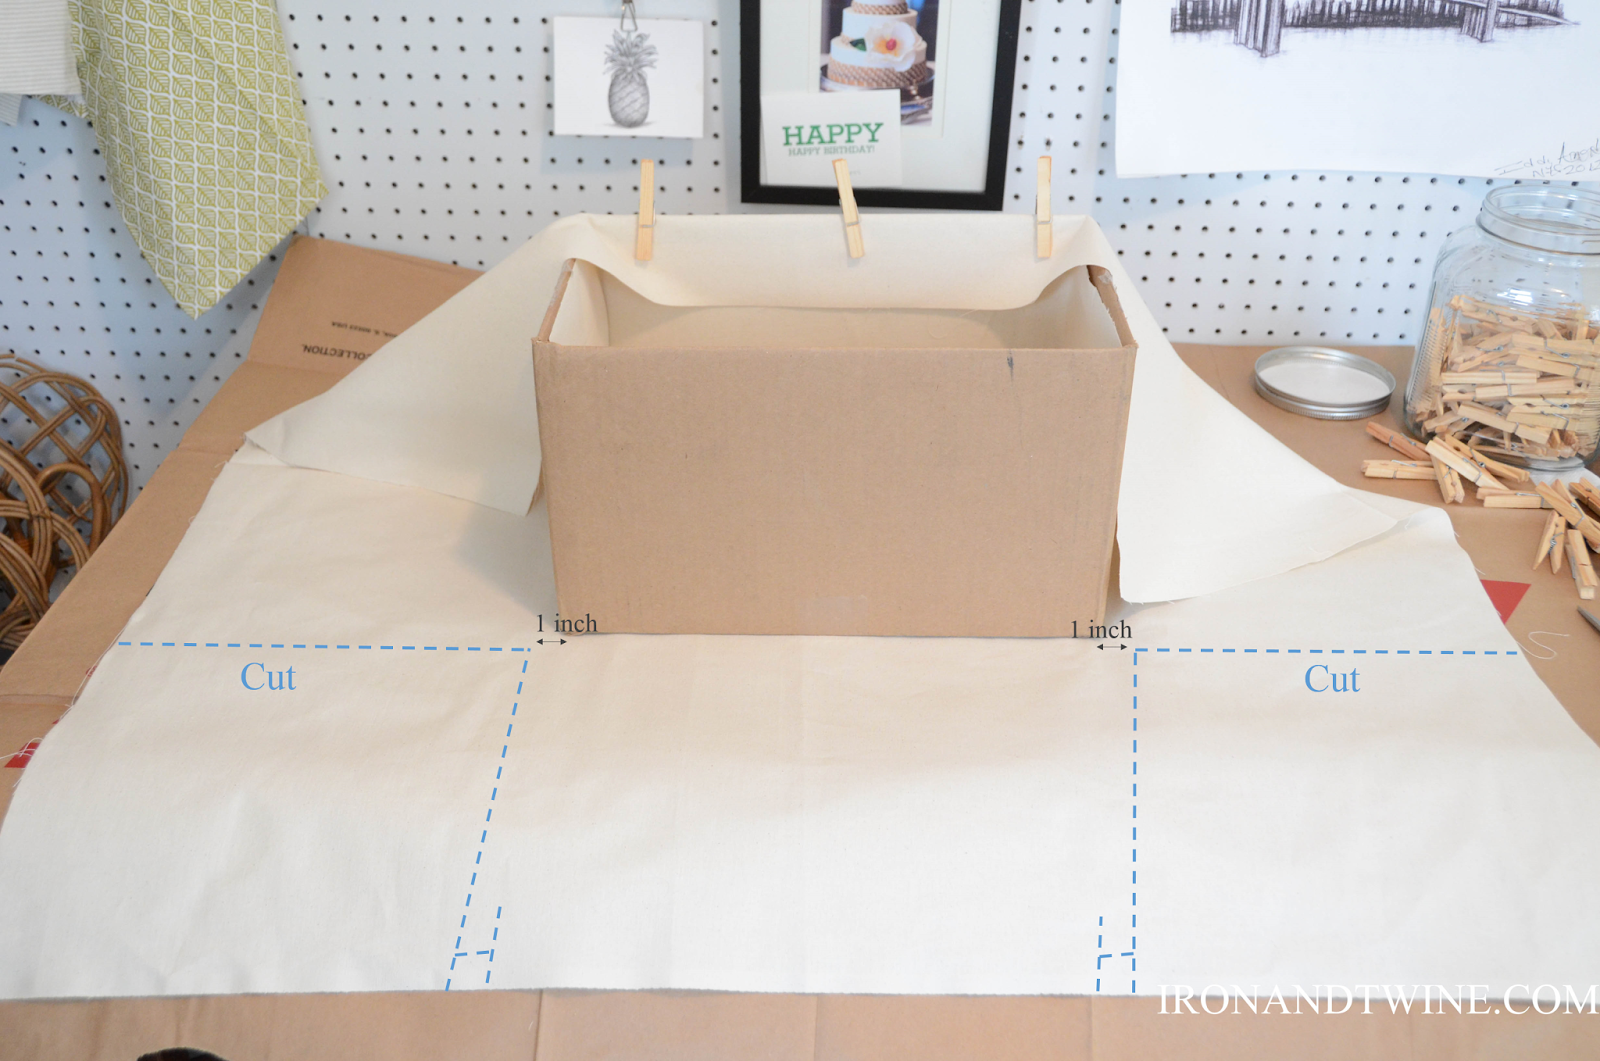 DIY+Belt+Handled+Box,+DIY+fabric+covered+box,+Iron+and+Twine+(1).png